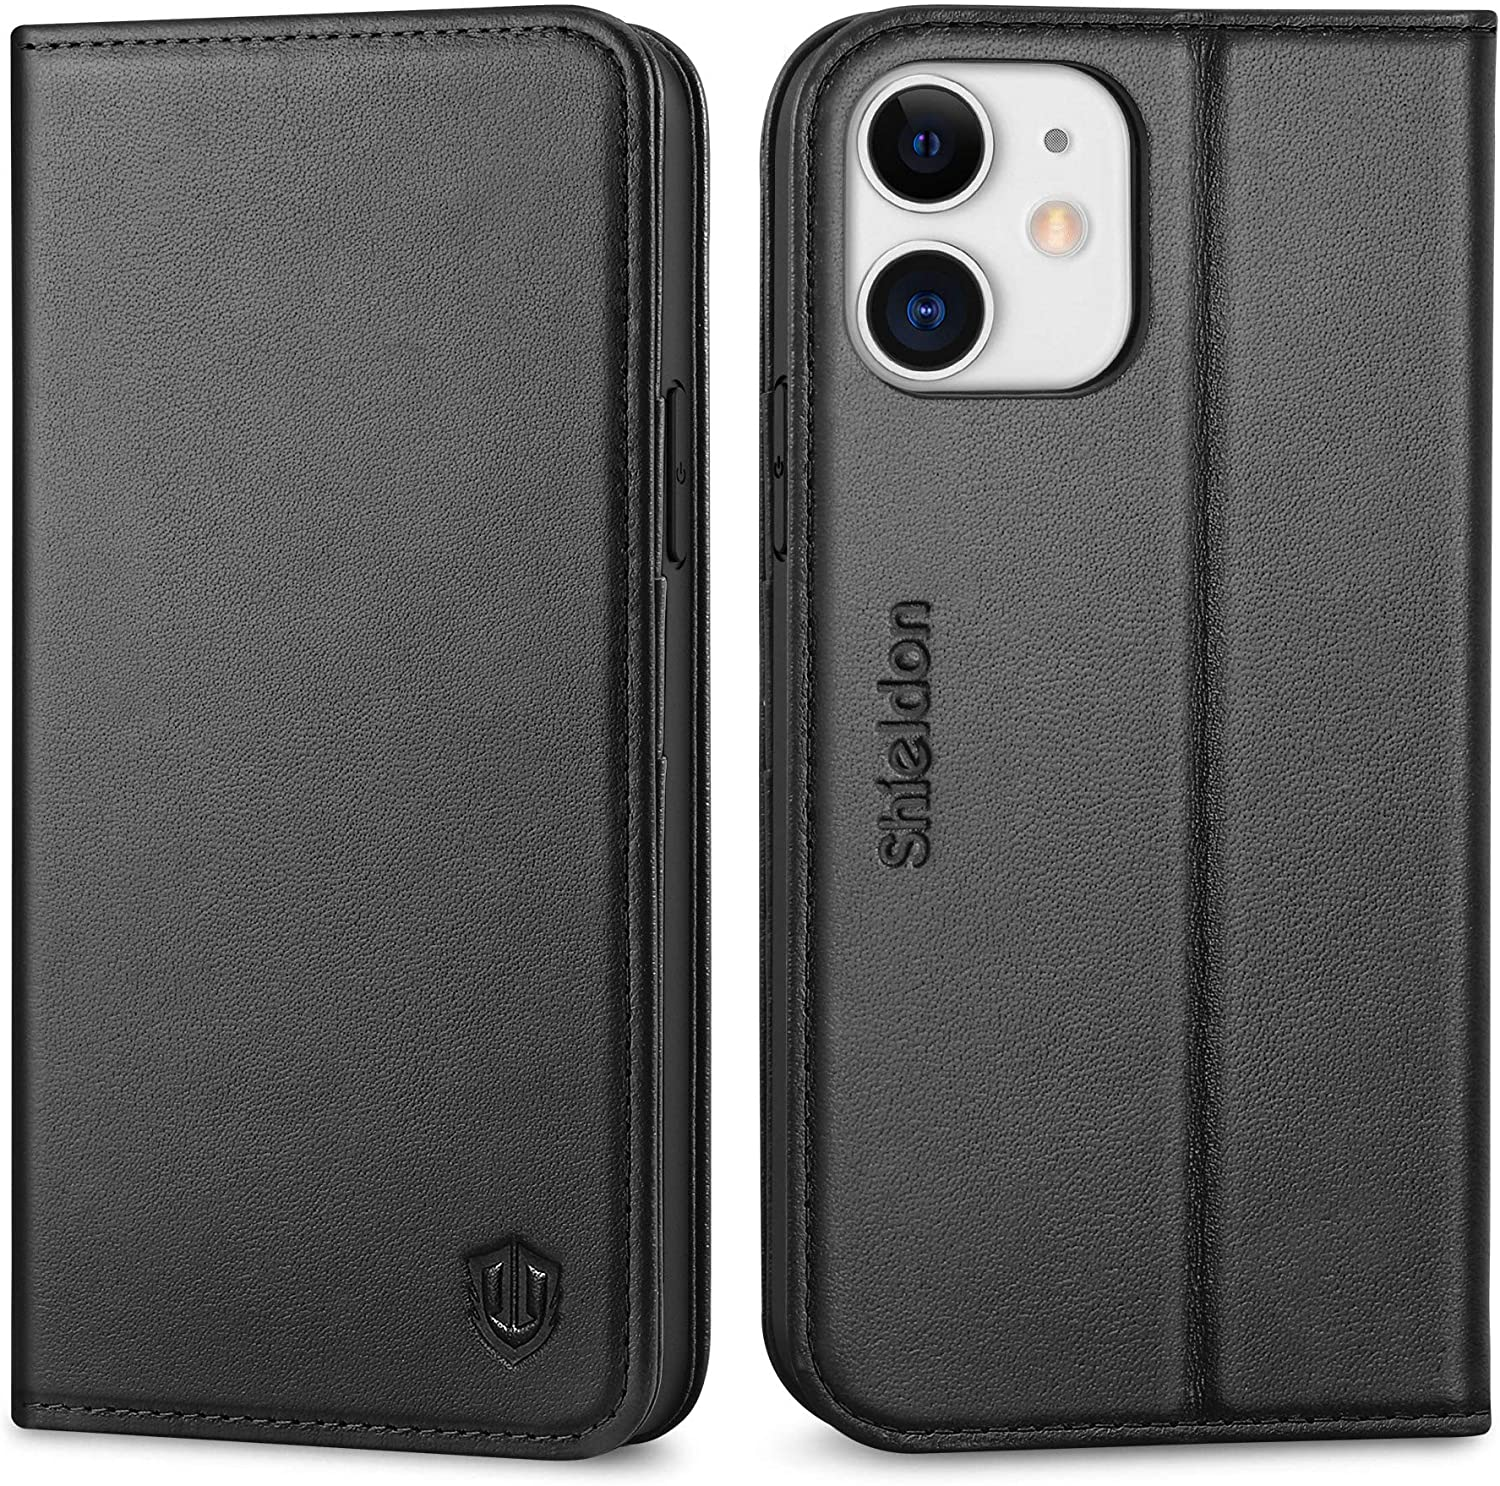 SHIELDON Case for iPhone 12/12 Pro 5G, Genuine Leather Wallet Case Magnetic RFID Blocking Credit Card Holder Kickstand Shockproof Case Compatible with iPhone 12/12 Pro (6.1 Inch 2020) - Black